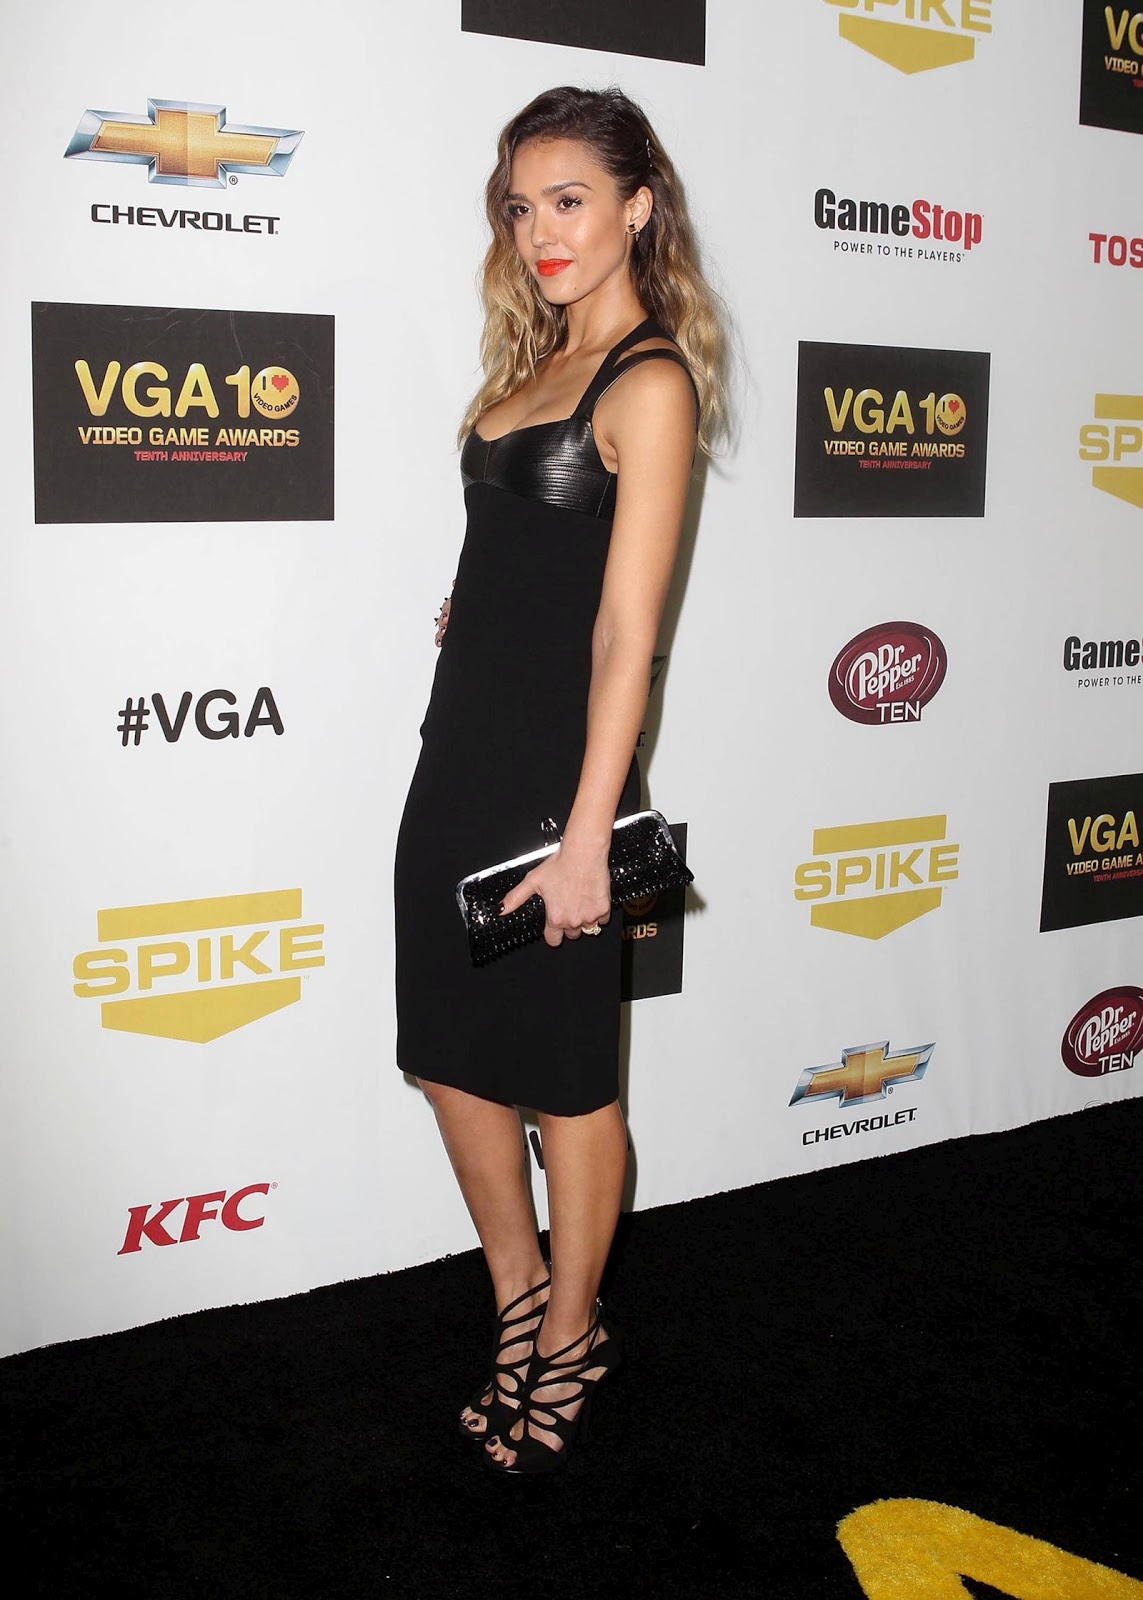 http://3.bp.blogspot.com/-cF0GQw3uSwk/UMRLeKgElcI/AAAAAAABNrE/EzDRvIC-5-w/s1600/Jessica-Alba-Spike-TV-10th-Annual-Video-Game-Awards+(3).jpg